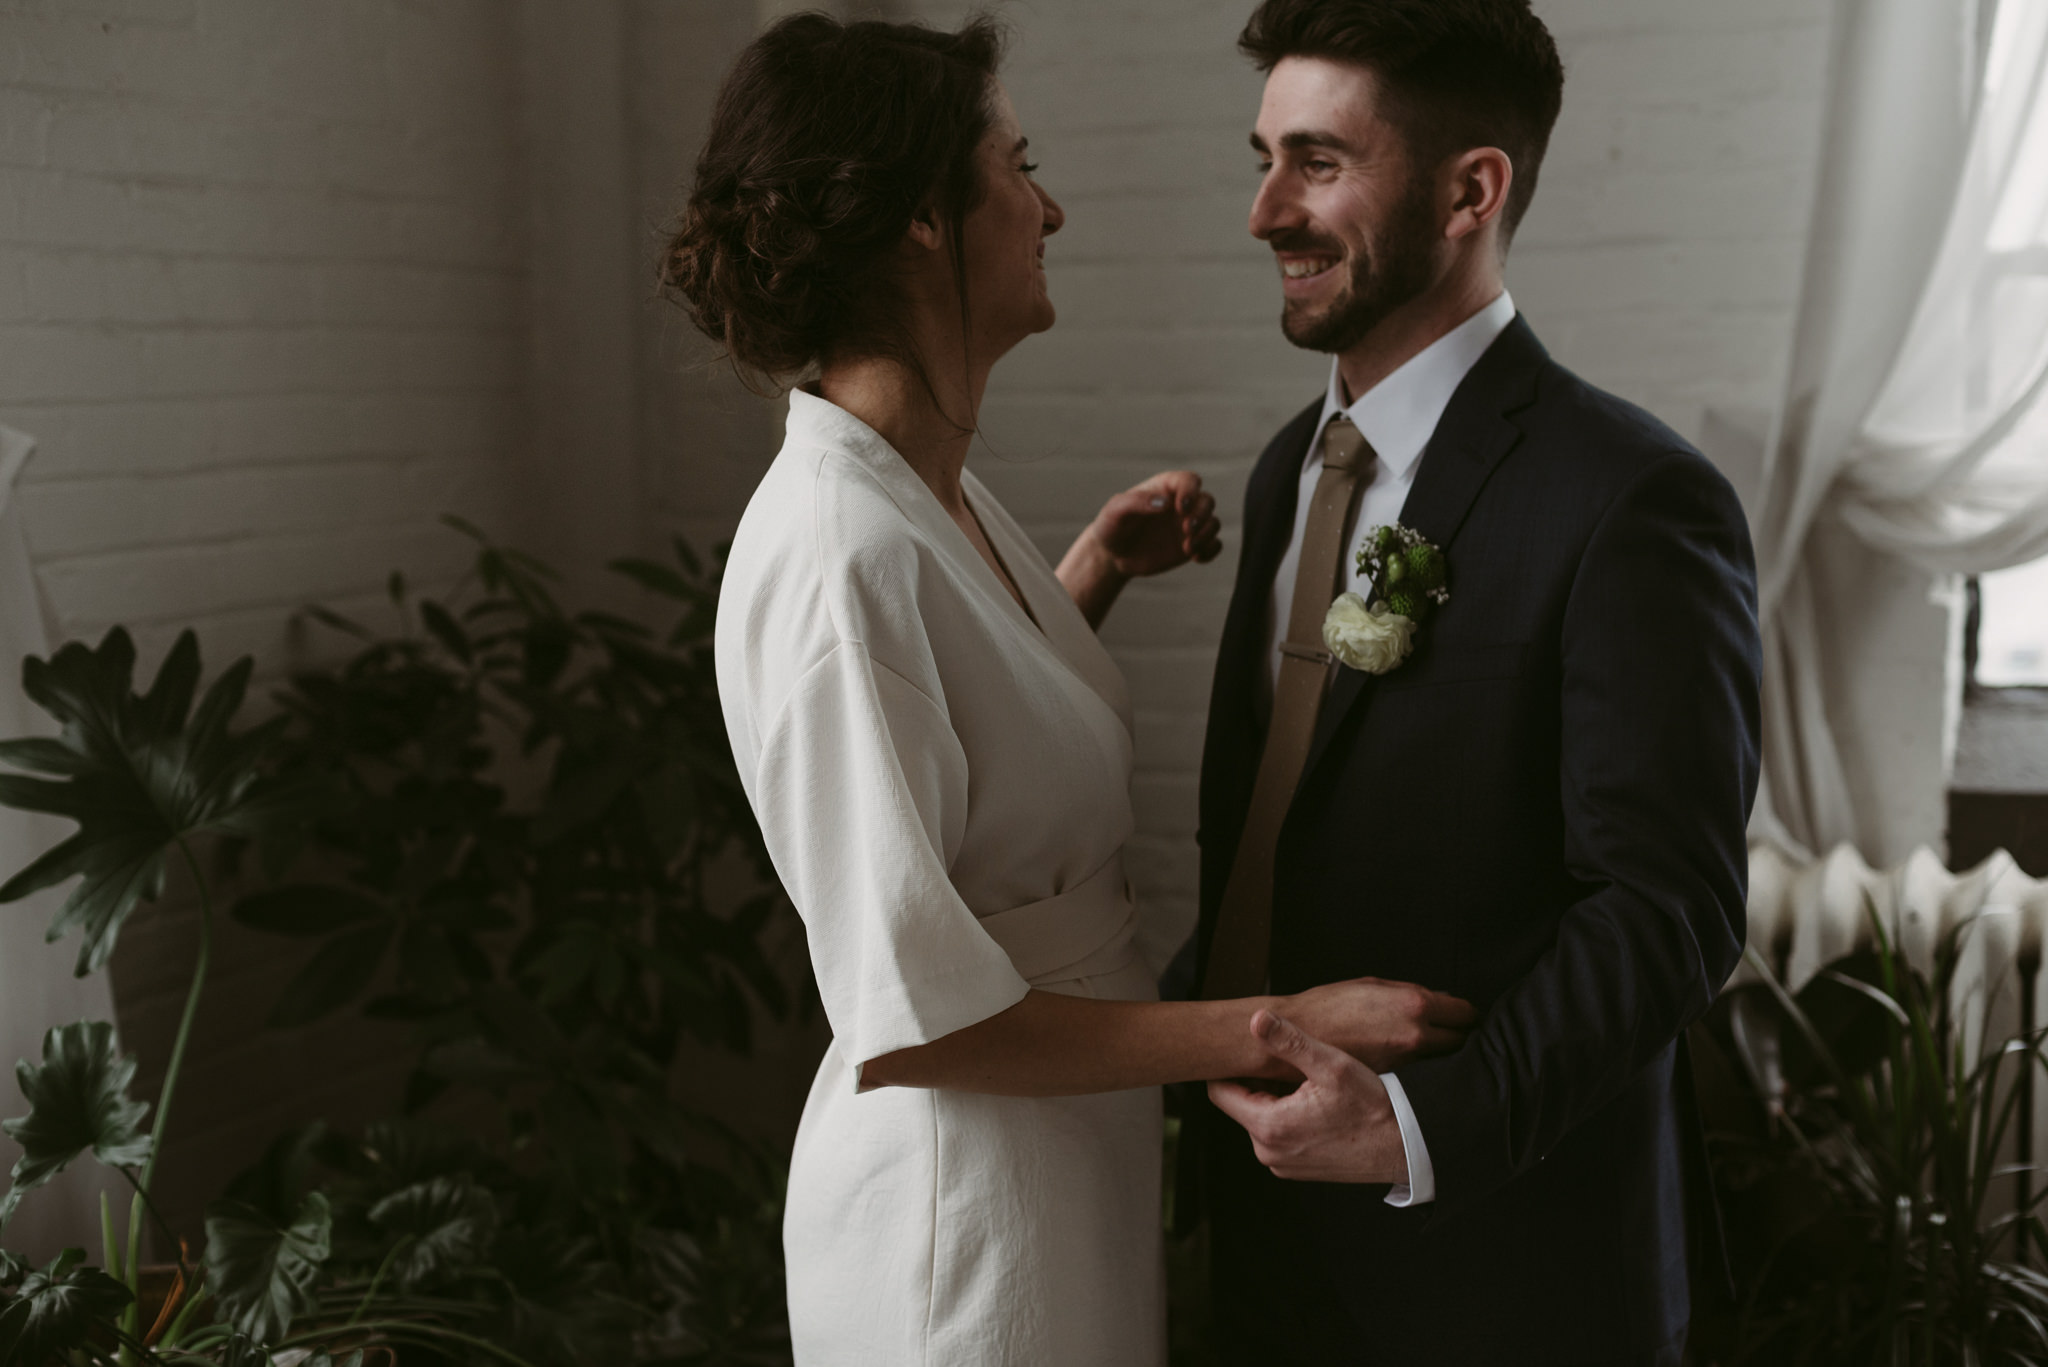 Bride and groom laughing in loft with plants